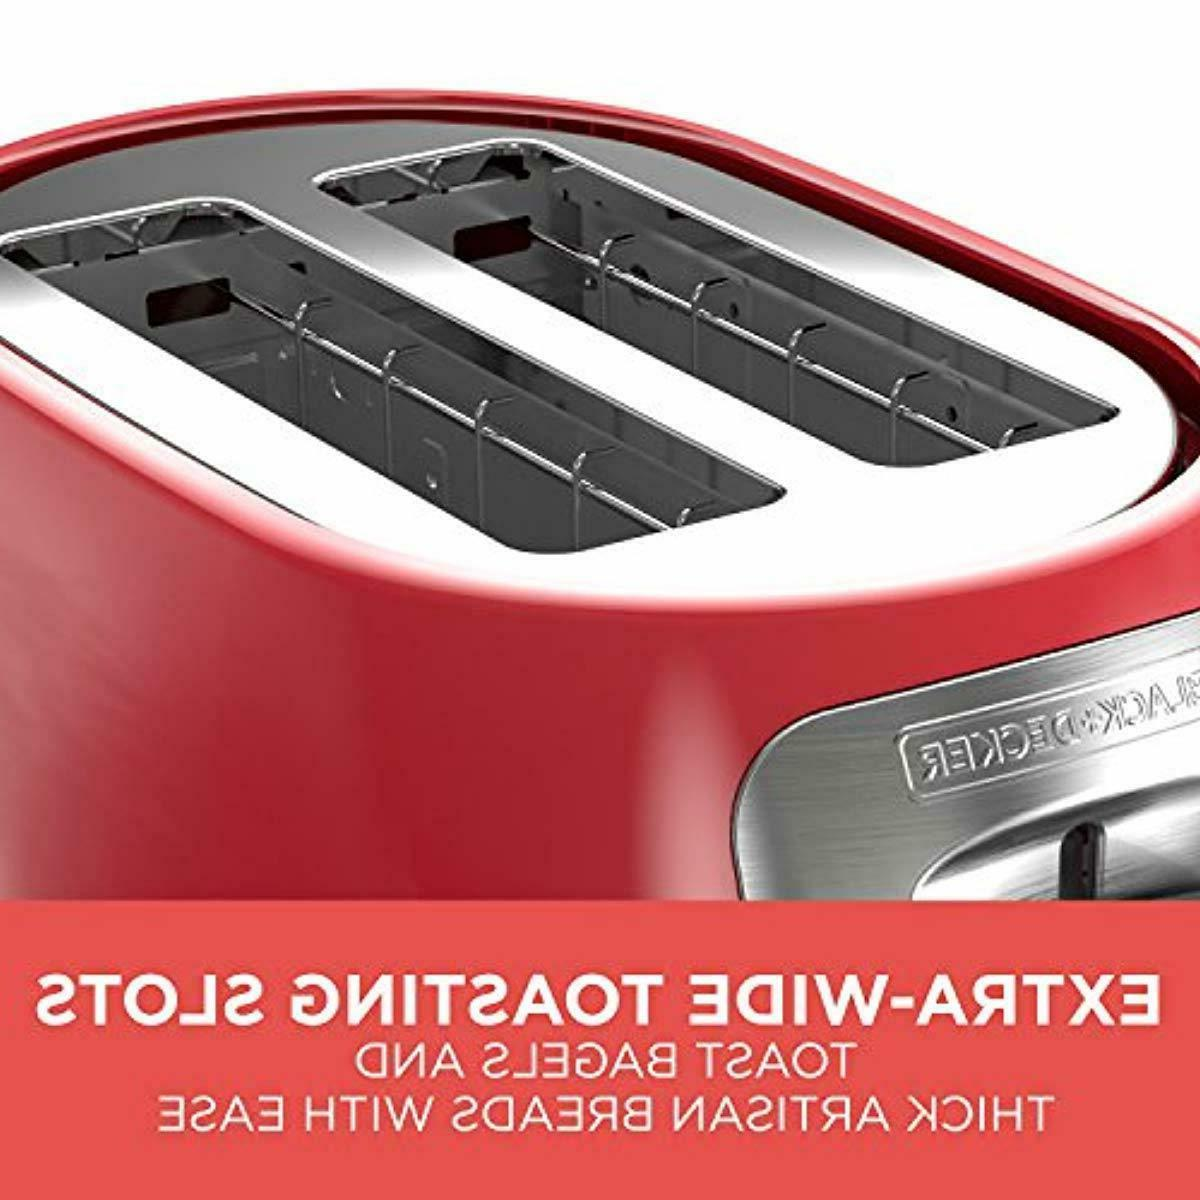 Black And Slice Toaster Toasting Bagel Red